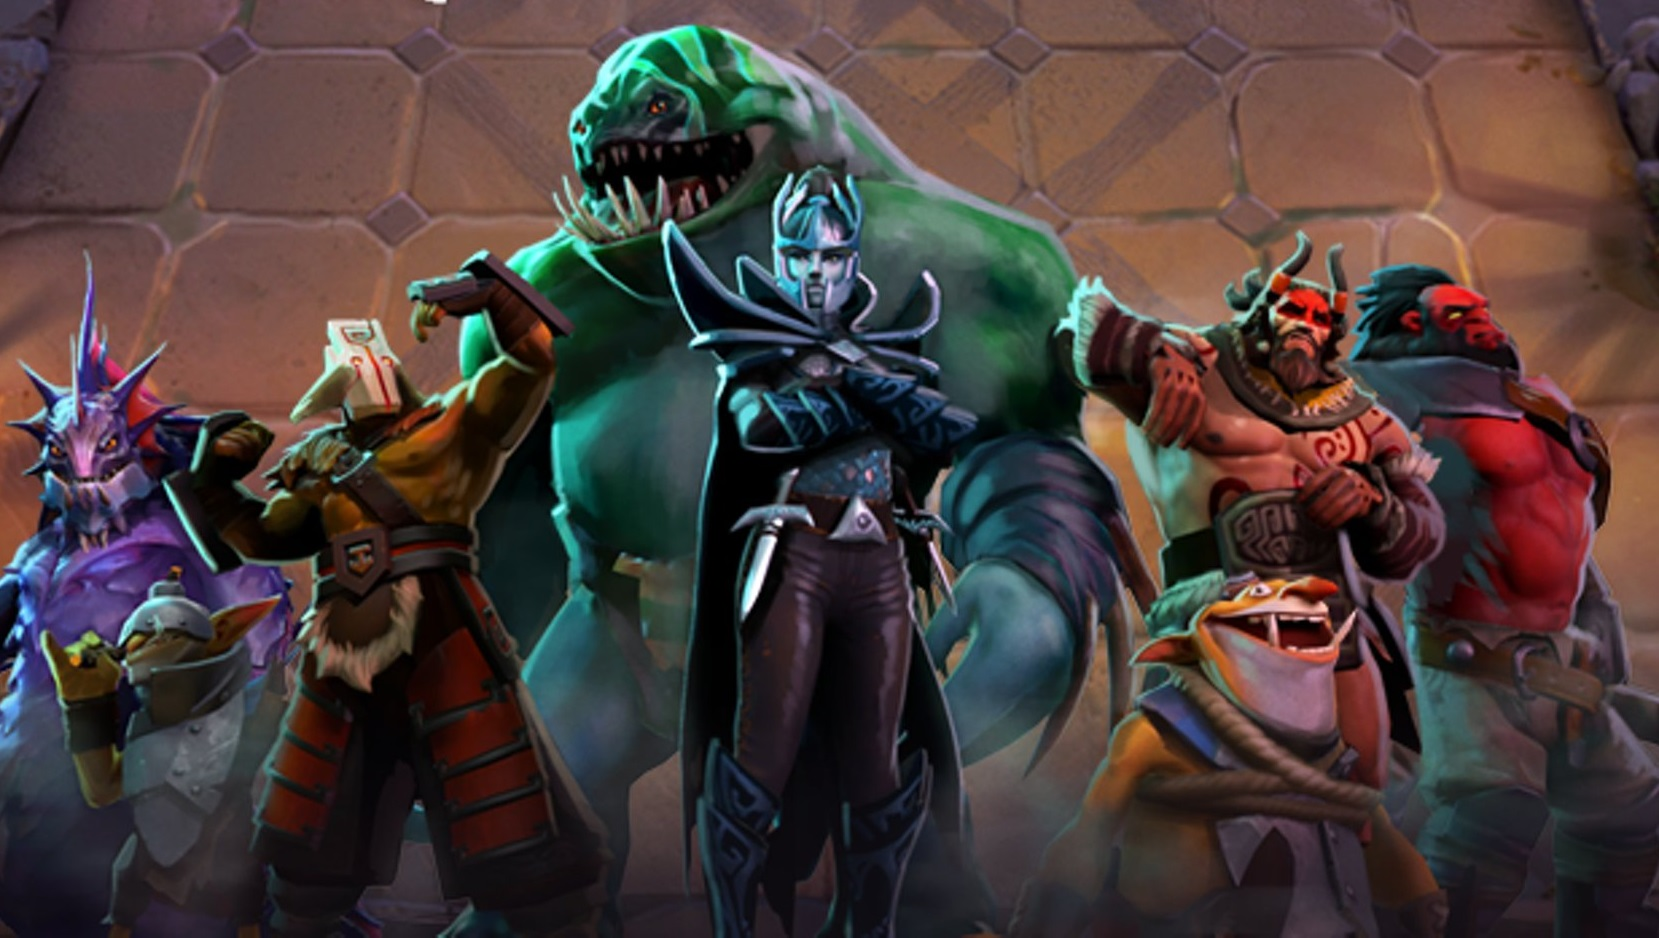 Dota Underlords has more than double Artifact's peak player count   PC Gamer